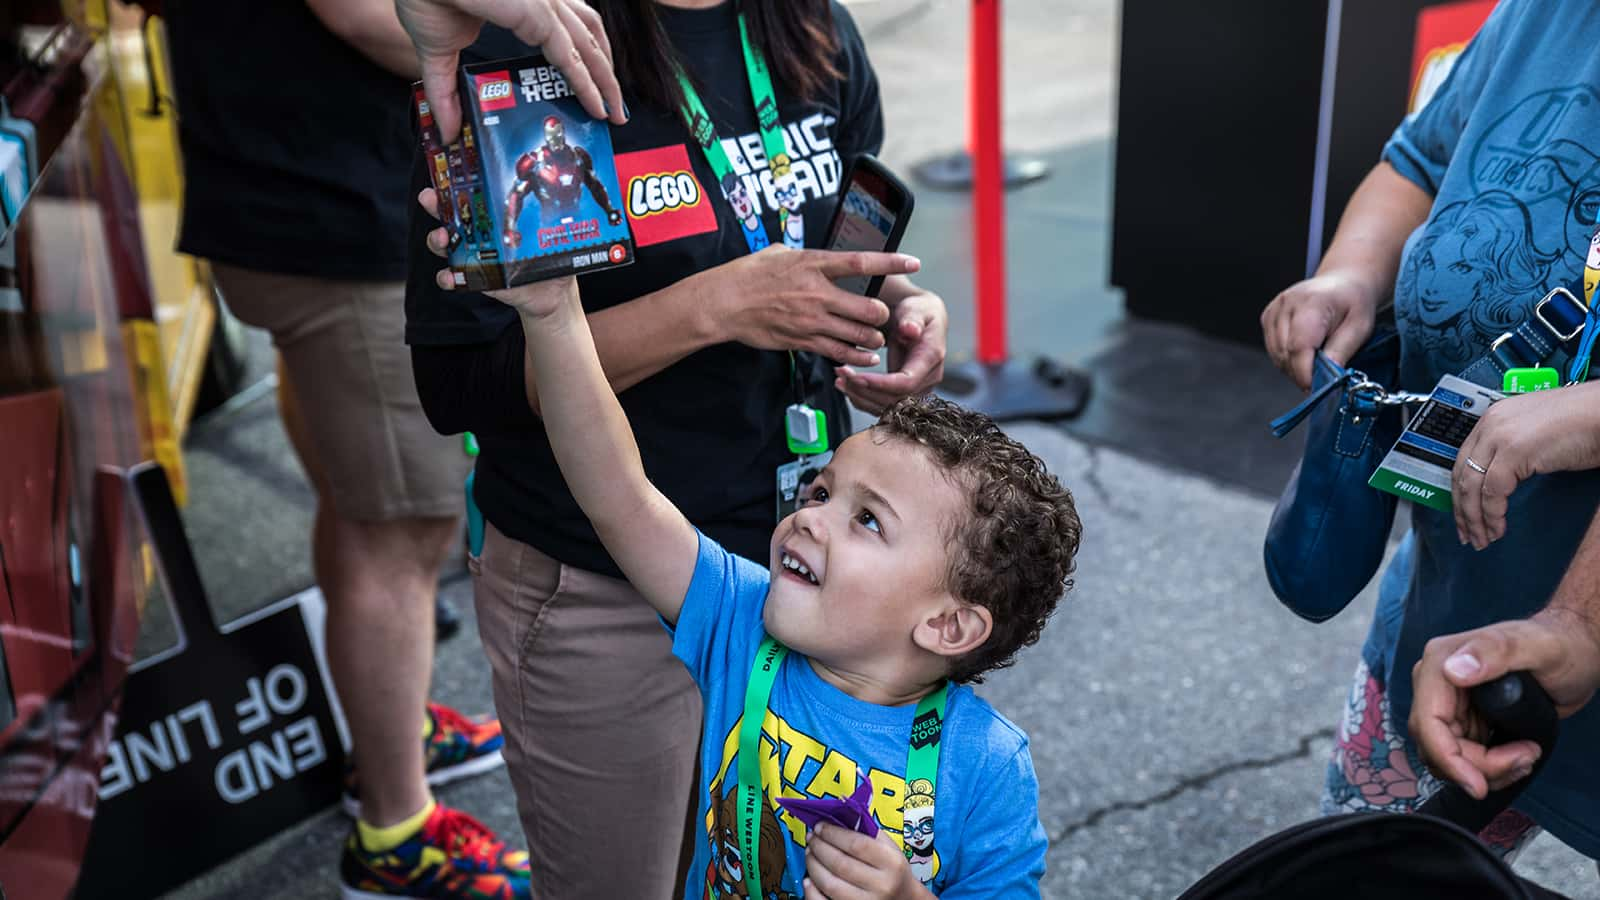 A little fan gets his favorite BrickHeadz at the LEGO Food Truck parked in the LEGO Star Wars BrickHeadz zone at New York Comic Con 2017.